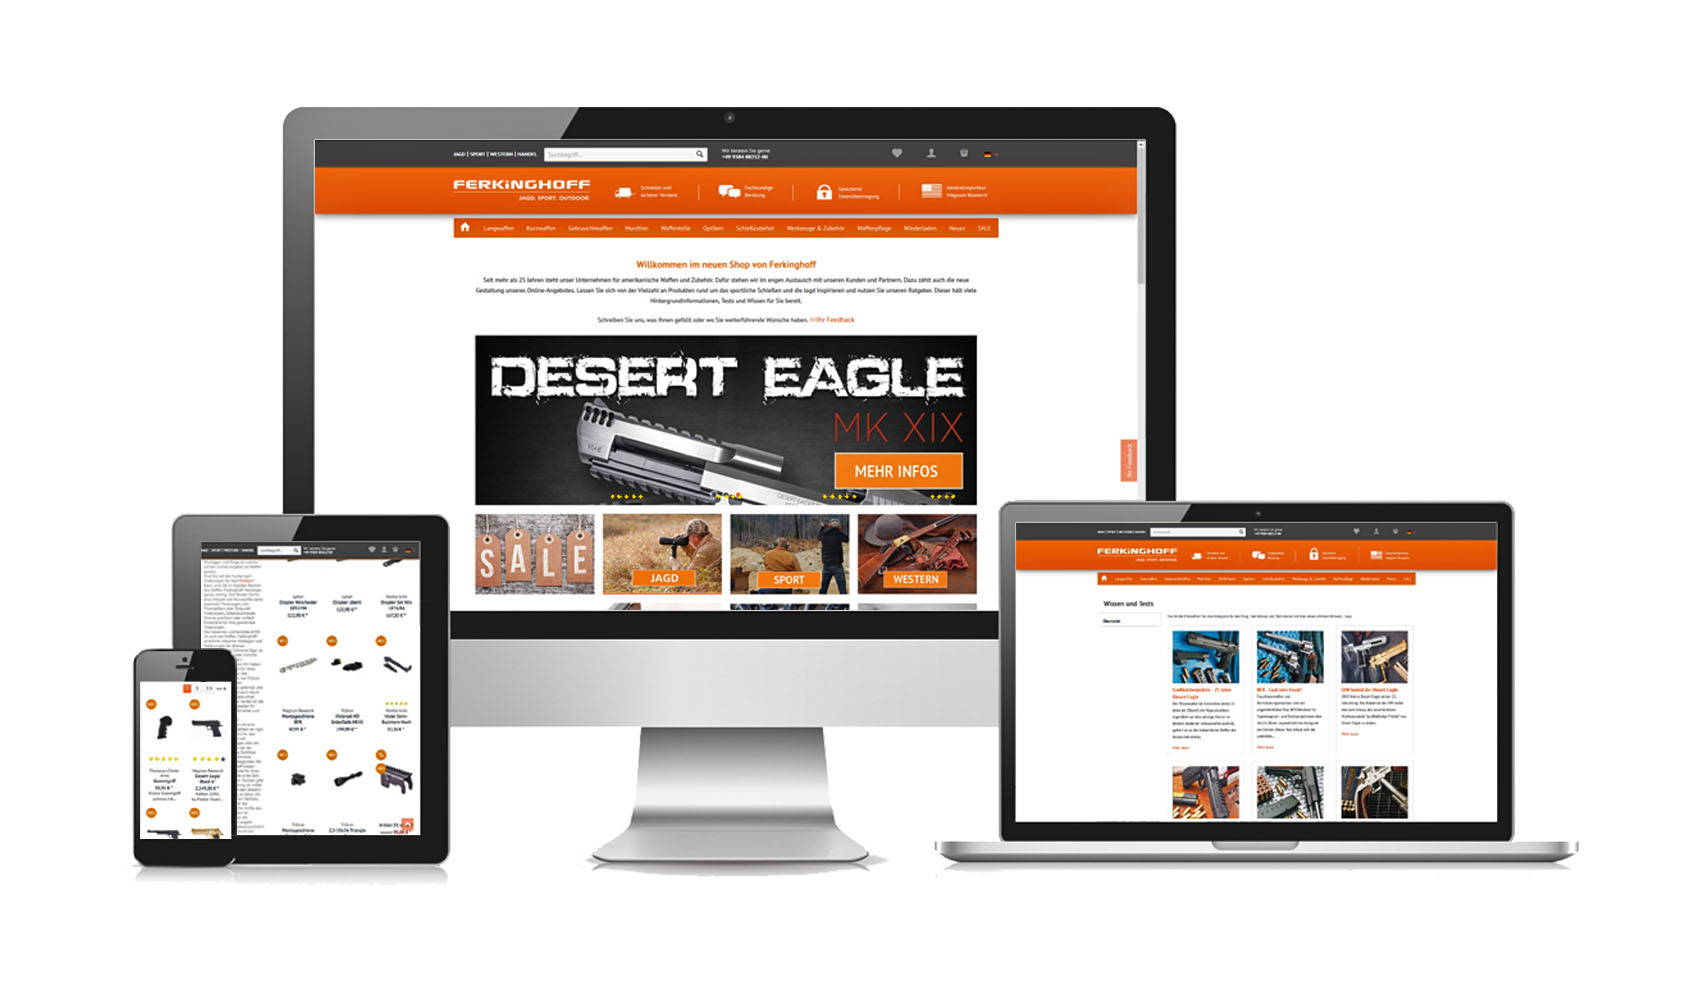 Waffen ferkinghoff launches the new online shop for New online shoping site